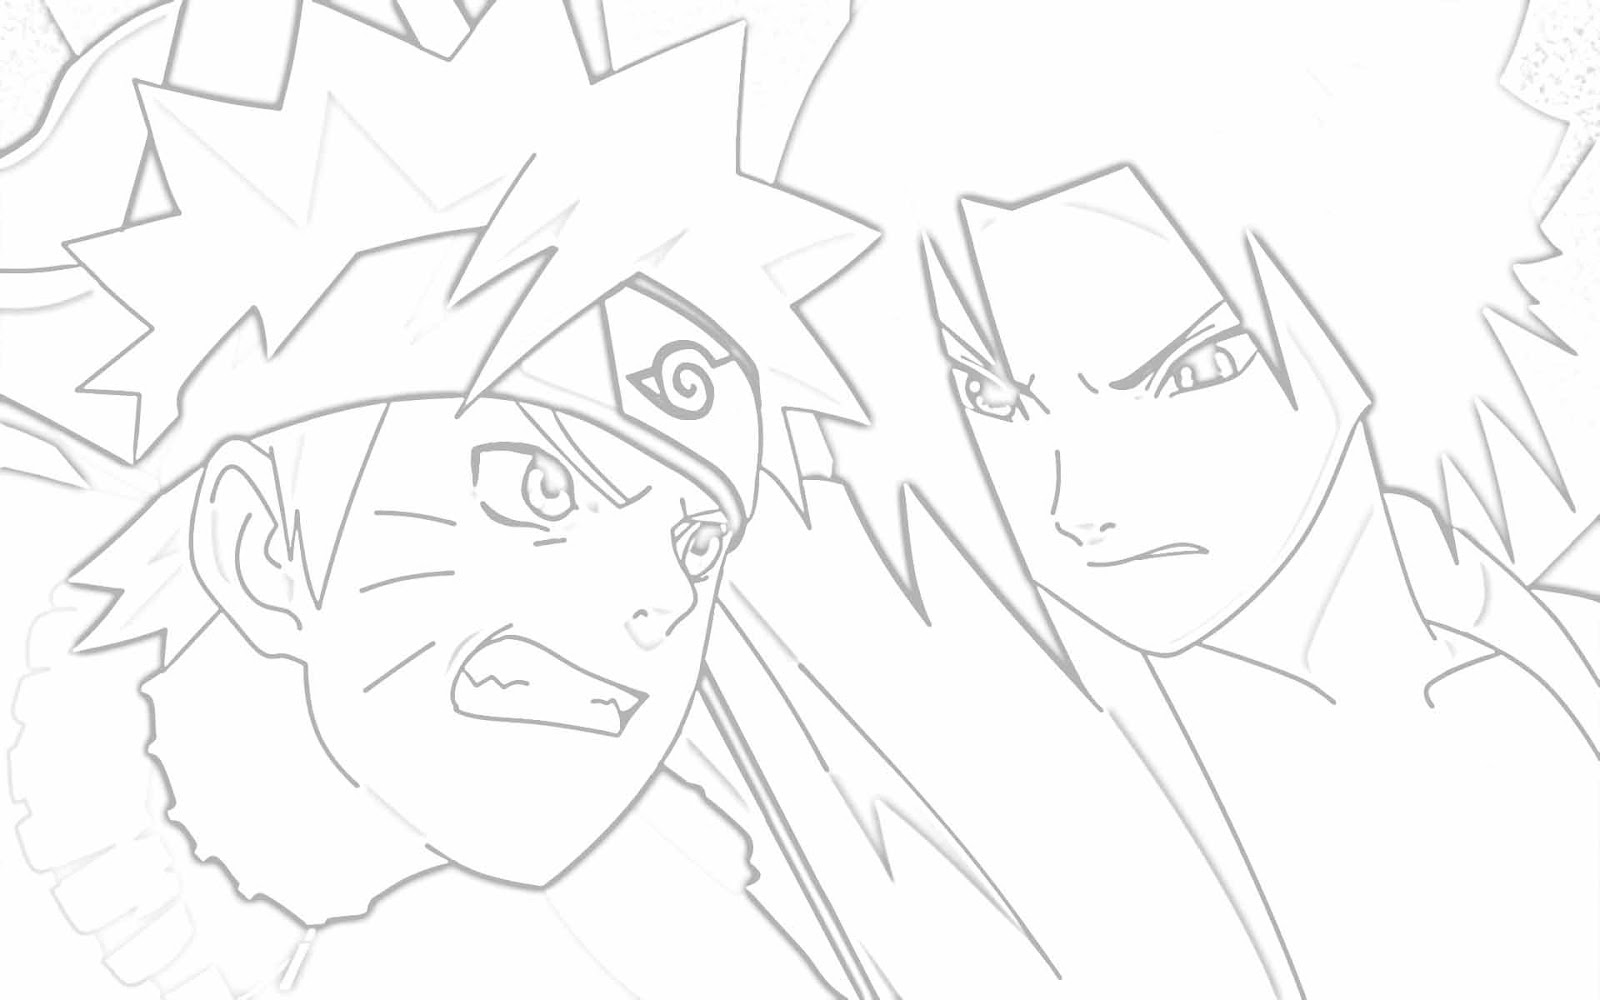 Miraculous Ladybug Coloring Pages Coloring Sketch Templates furthermore  together with Tsuade And Kakashi Coloring Pages Sketch Templates also Pencil Drawing Of Jesus Sketch Templates furthermore Dc Killer Croc Coloring Pages Sketch Templates. on sasuke curse mark coloring pages